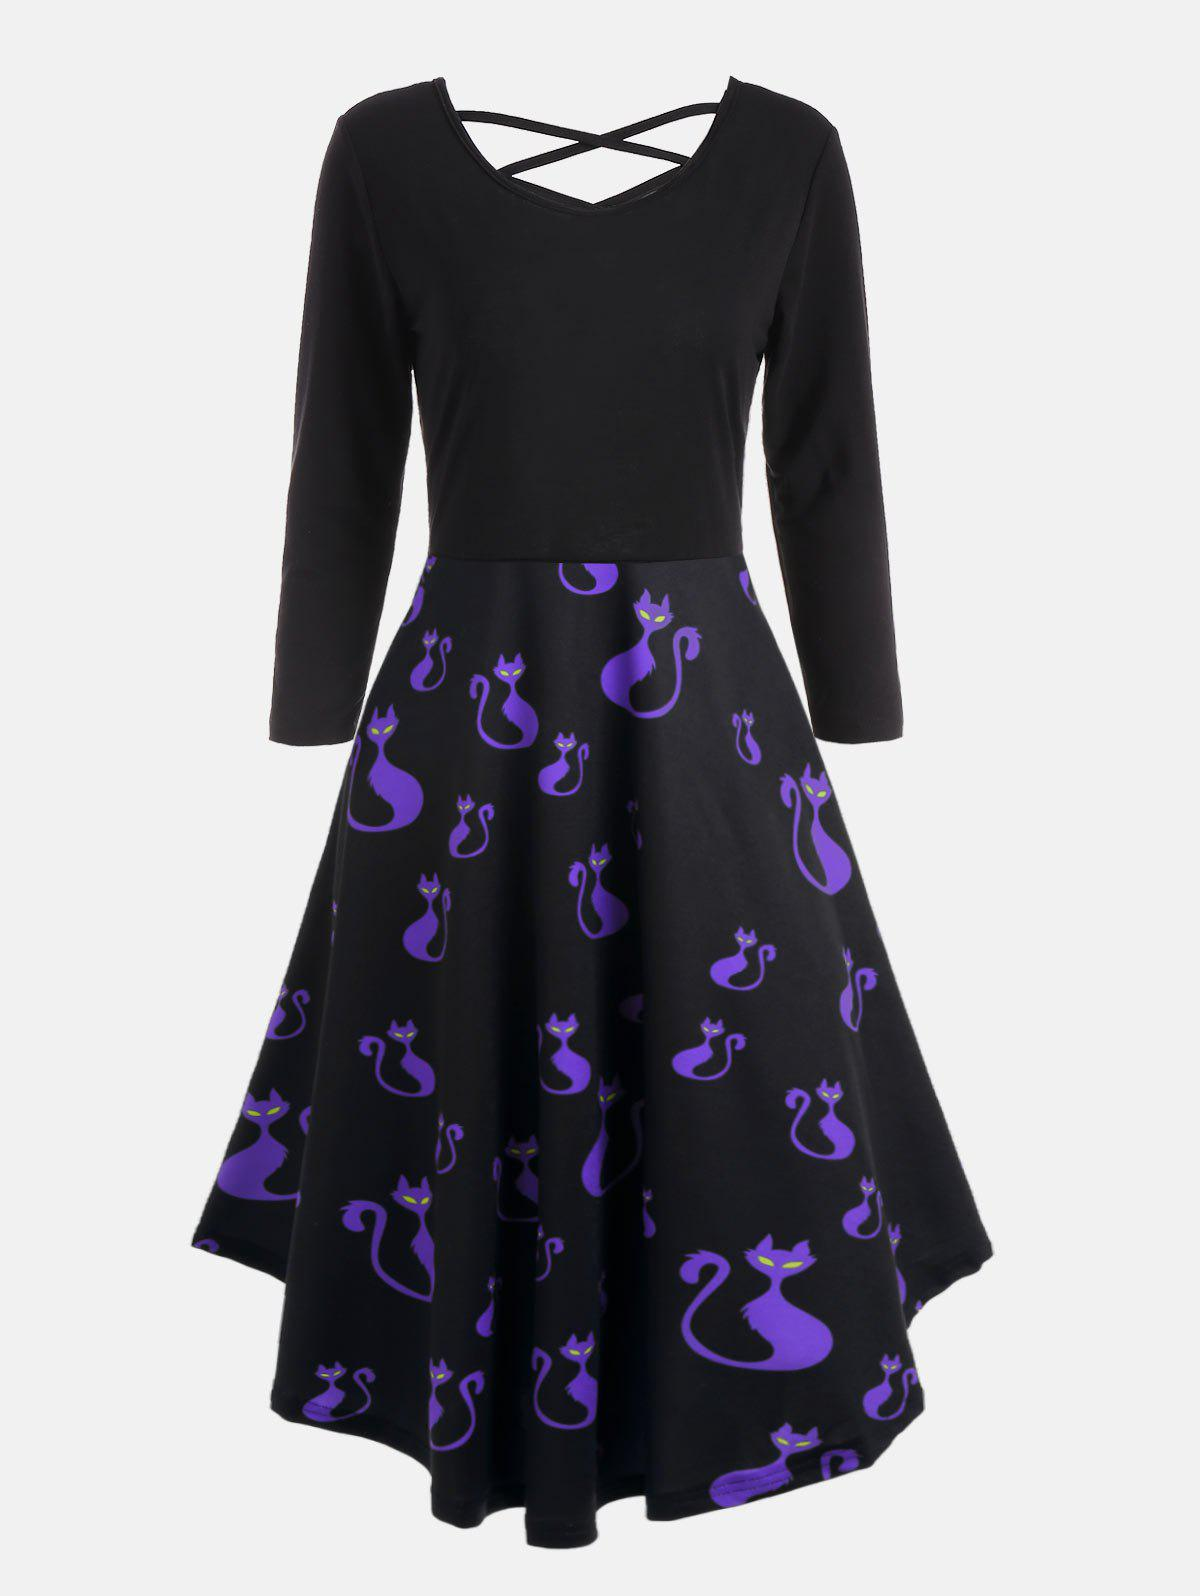 Halloween Pumpkins Cats Print Plus Size Flare Dress some pumpkins